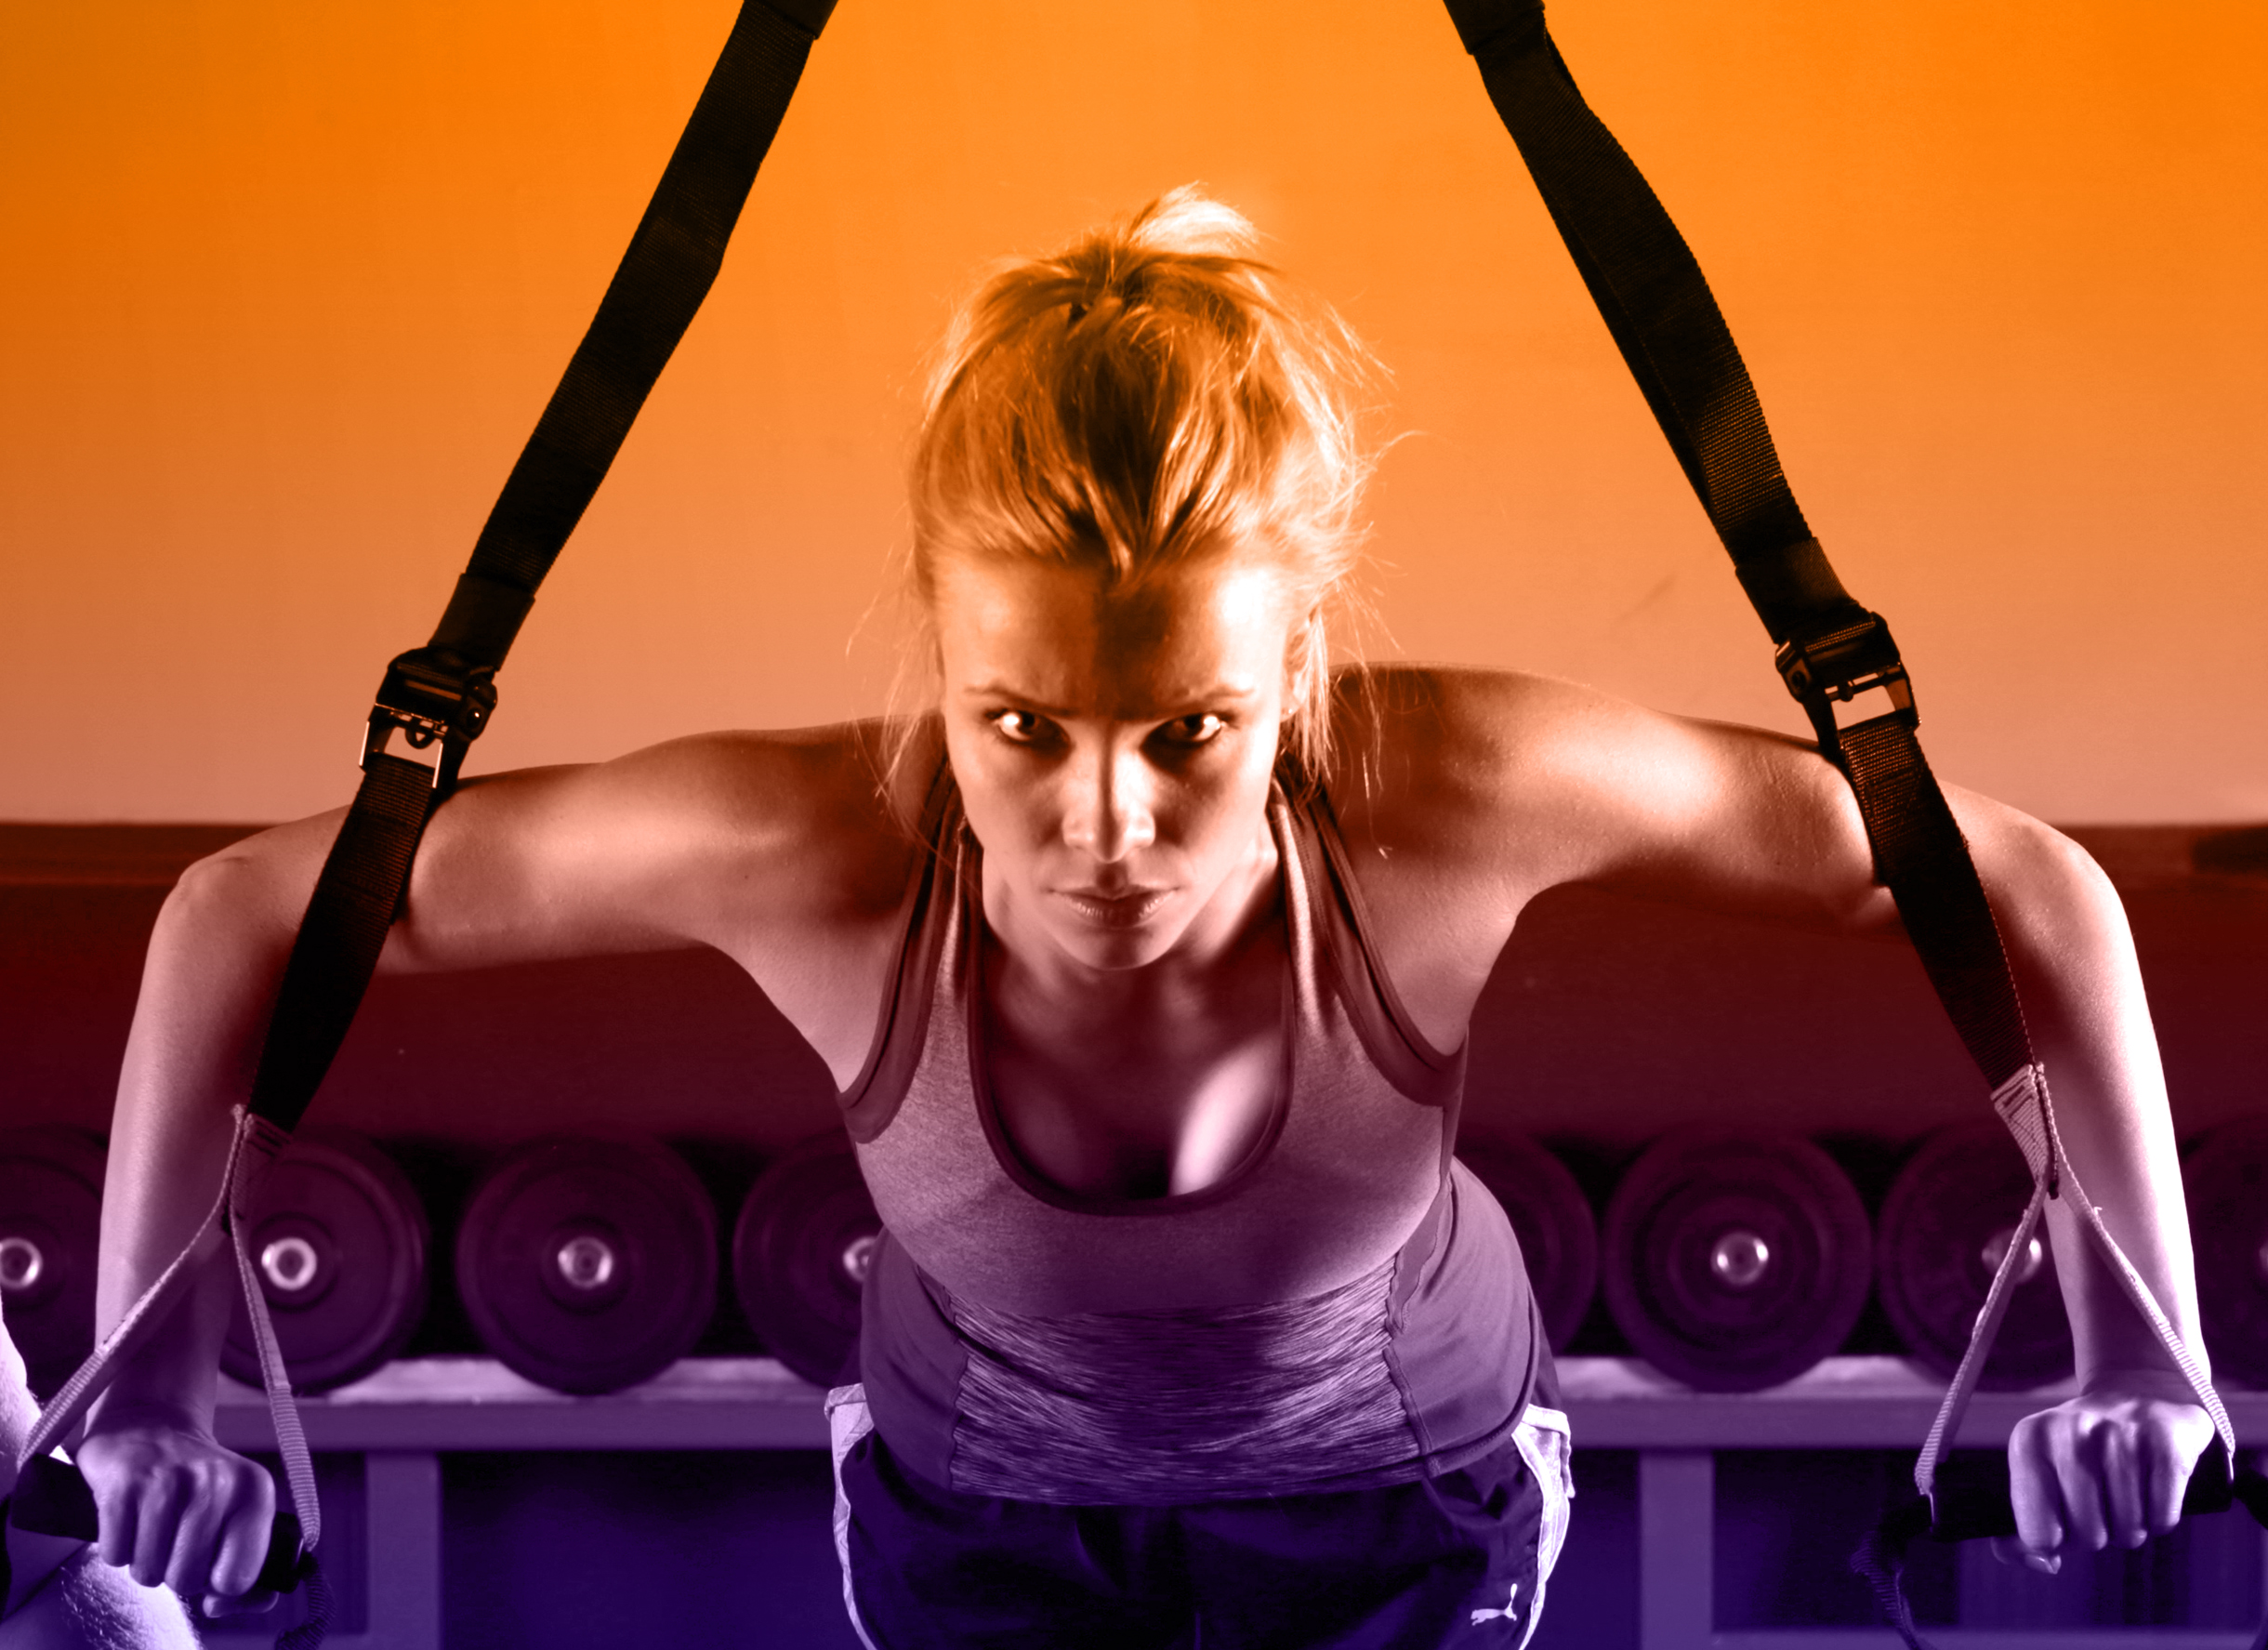 Young attractive woman training with htrx fitness straps in the gym photo